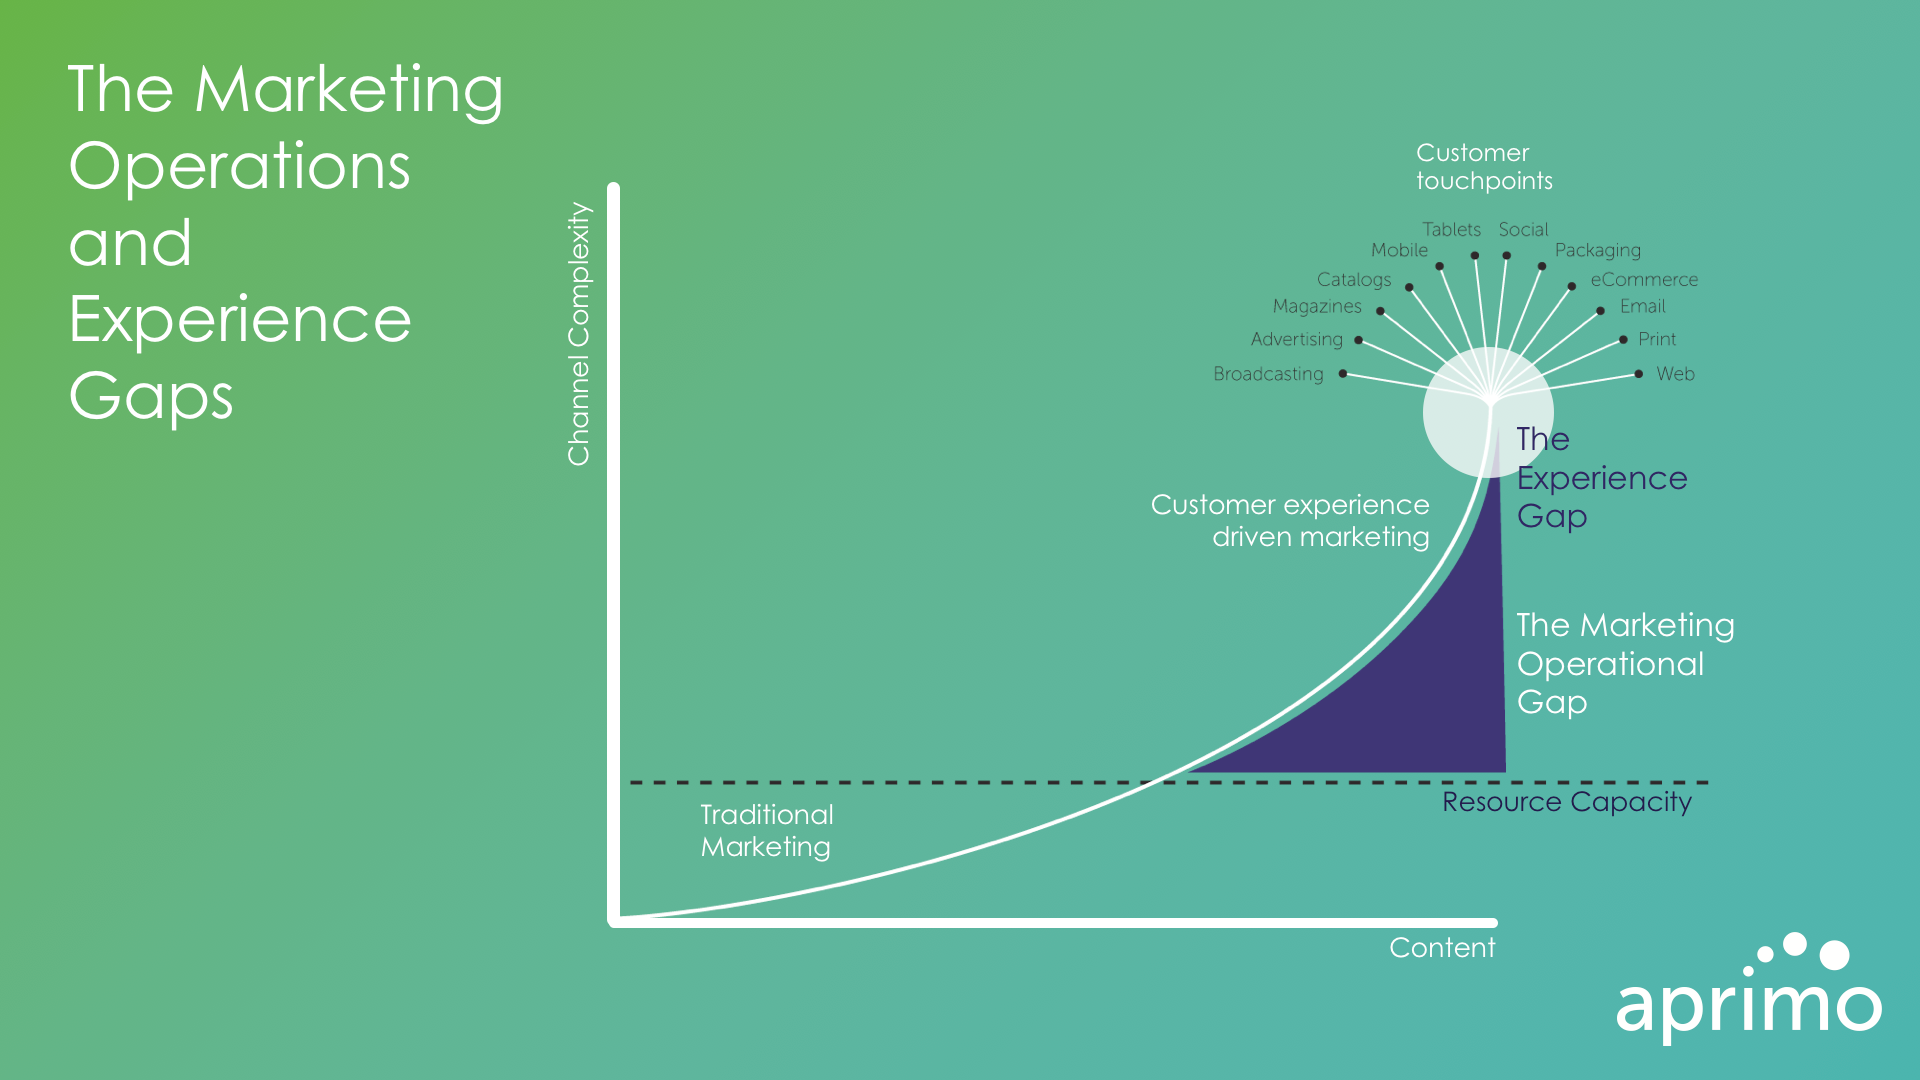 The Marketing Operations & Brand Experience Gaps